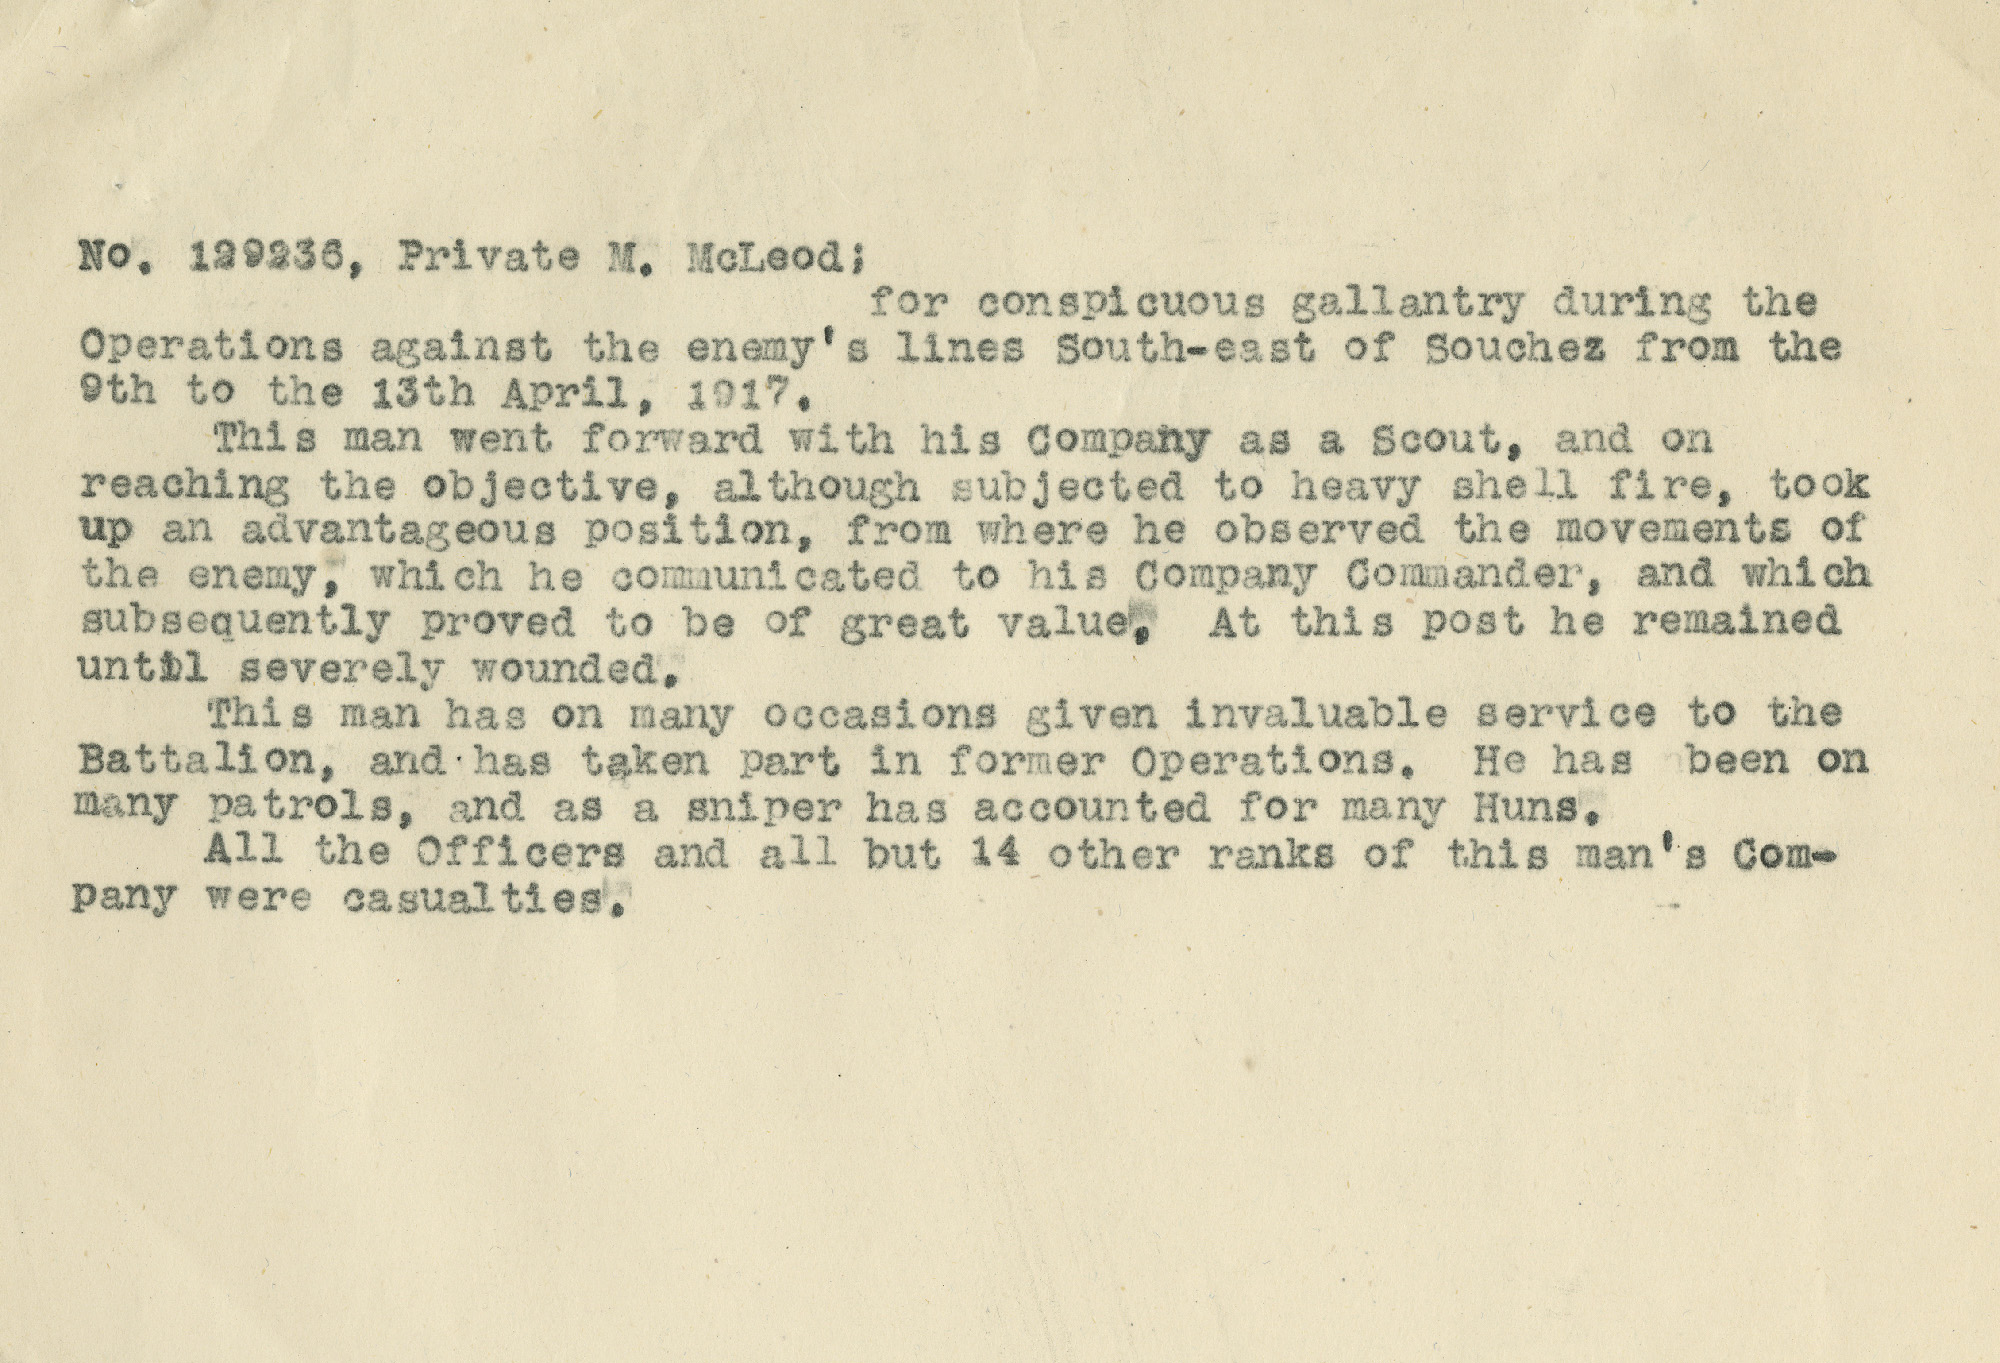 The 72nd Battalion's original citation for Private Malcolm McLeod.